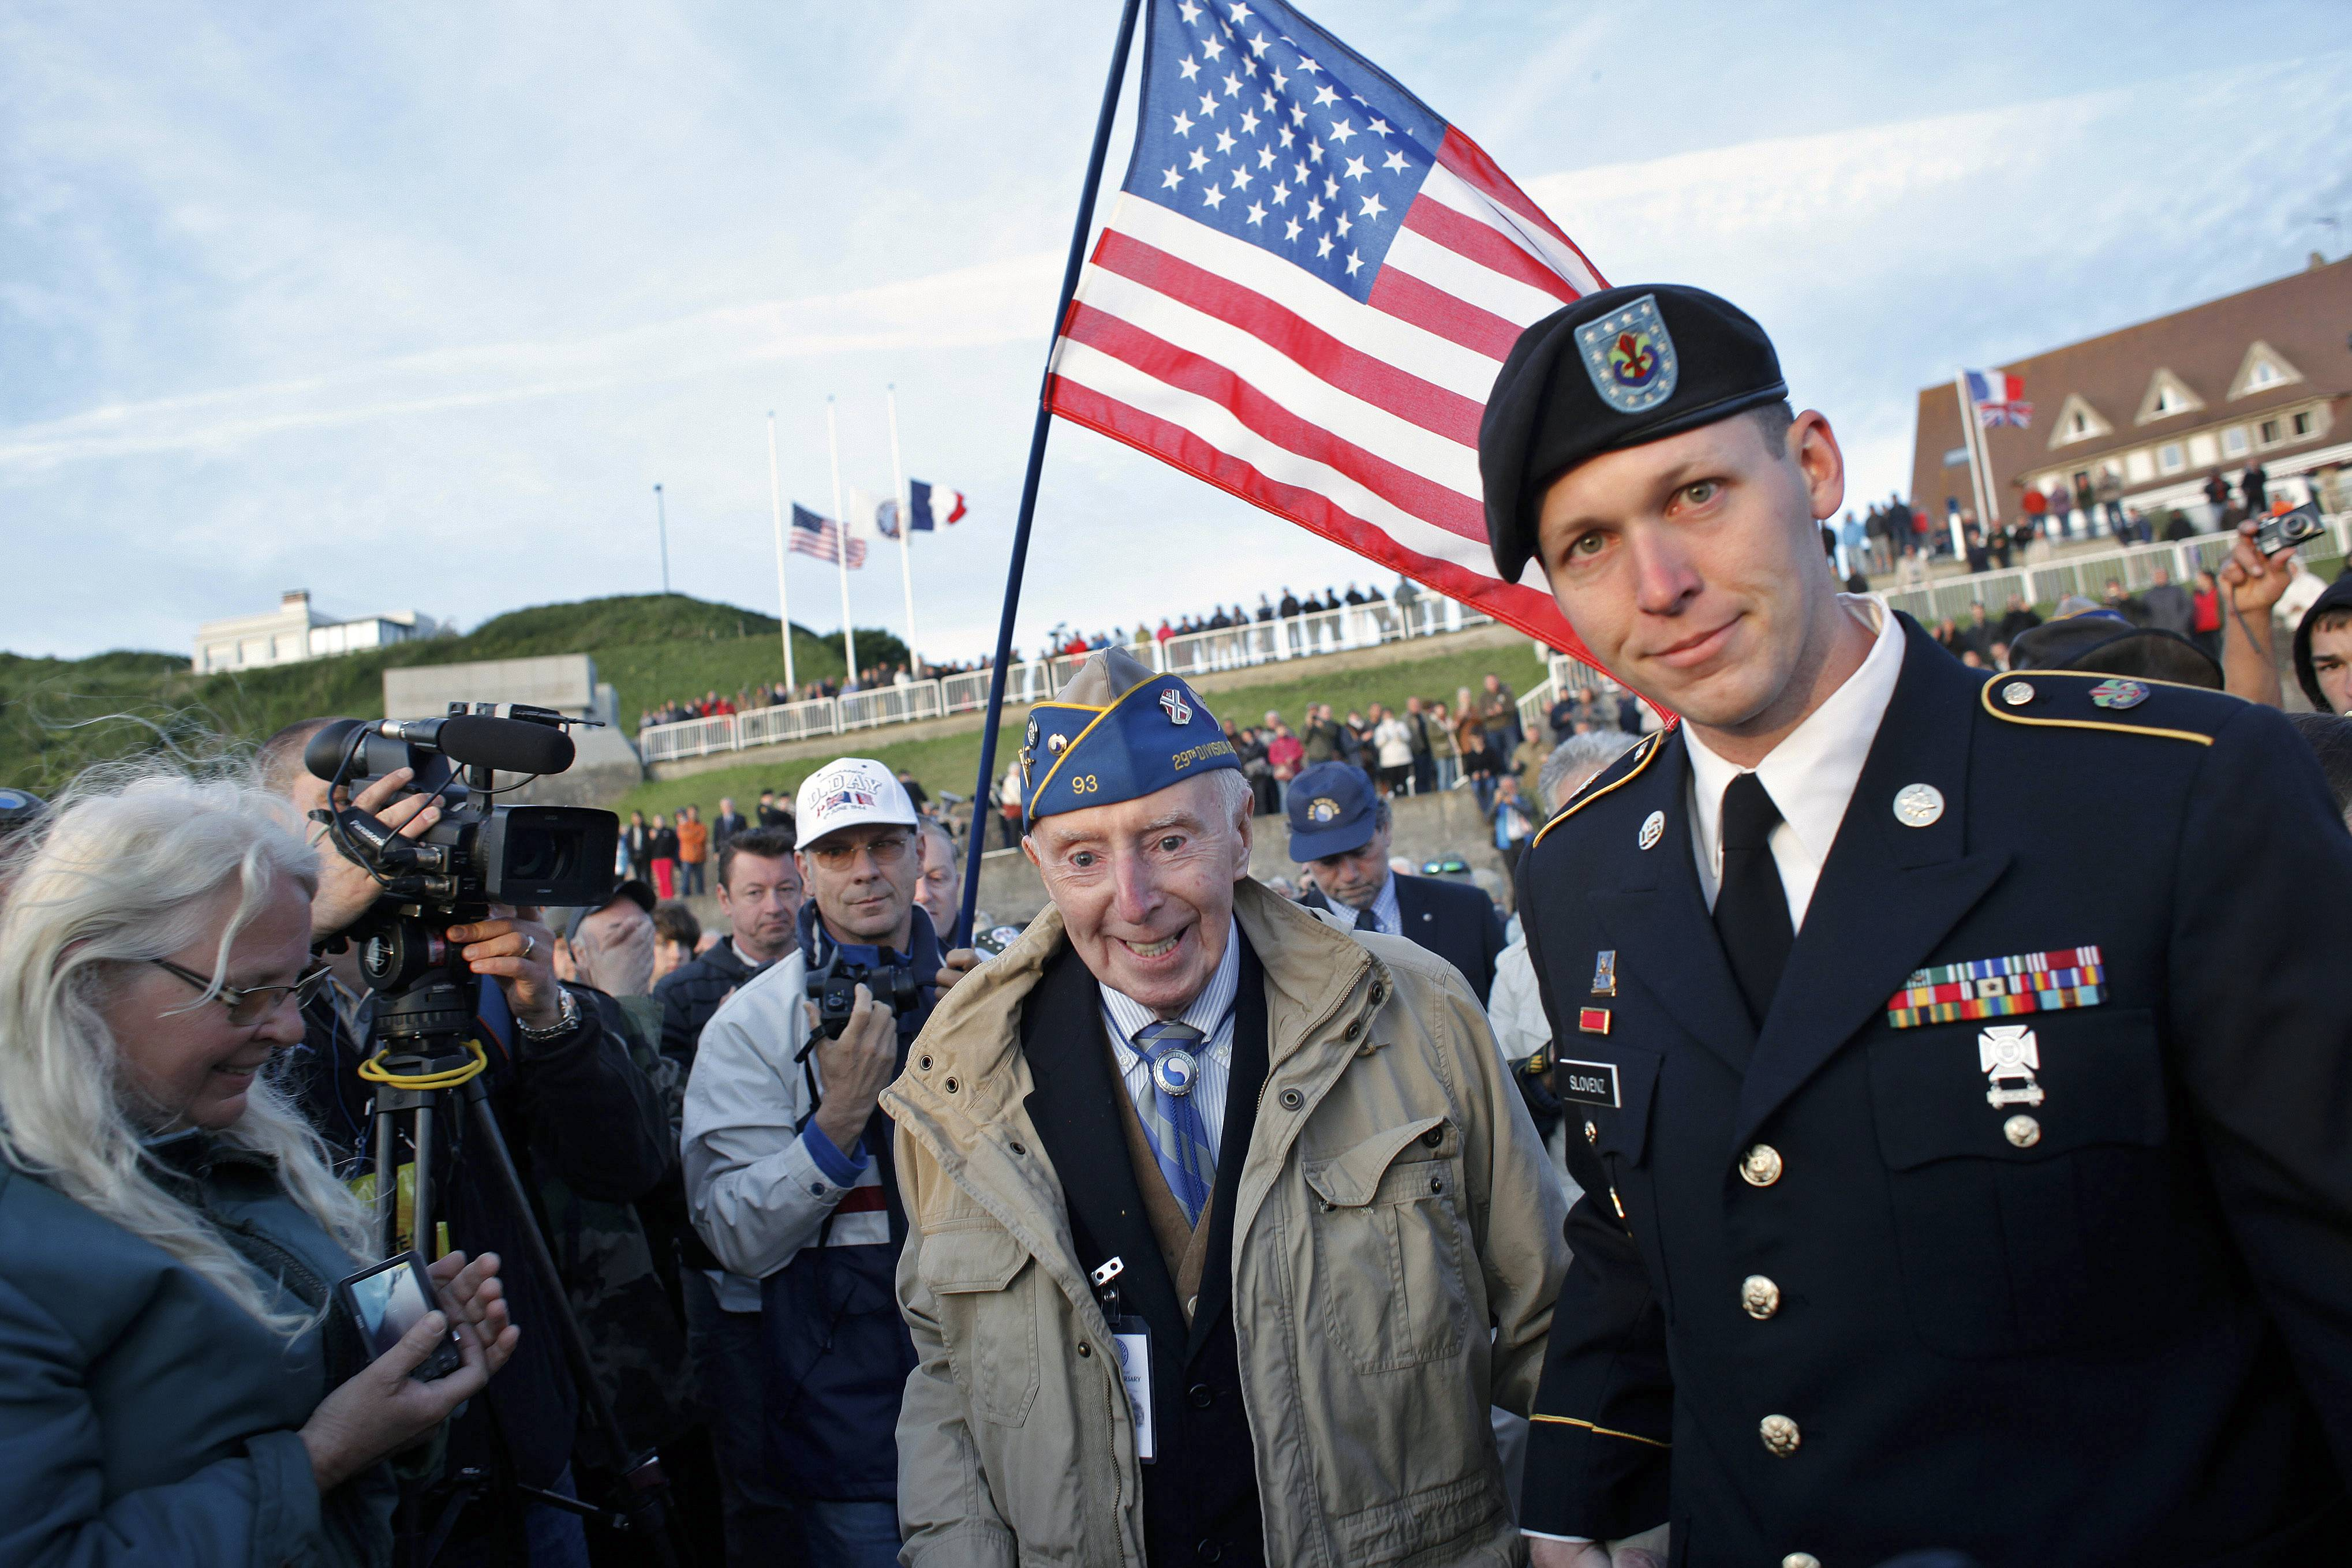 World War II veteran of the U.S. Army 29th Infantry Division, Don McCarthy, 90, from Maryland, center, arrives for a D-Day commemoration, on Omaha Beach, western France, Friday June 6, 2014.